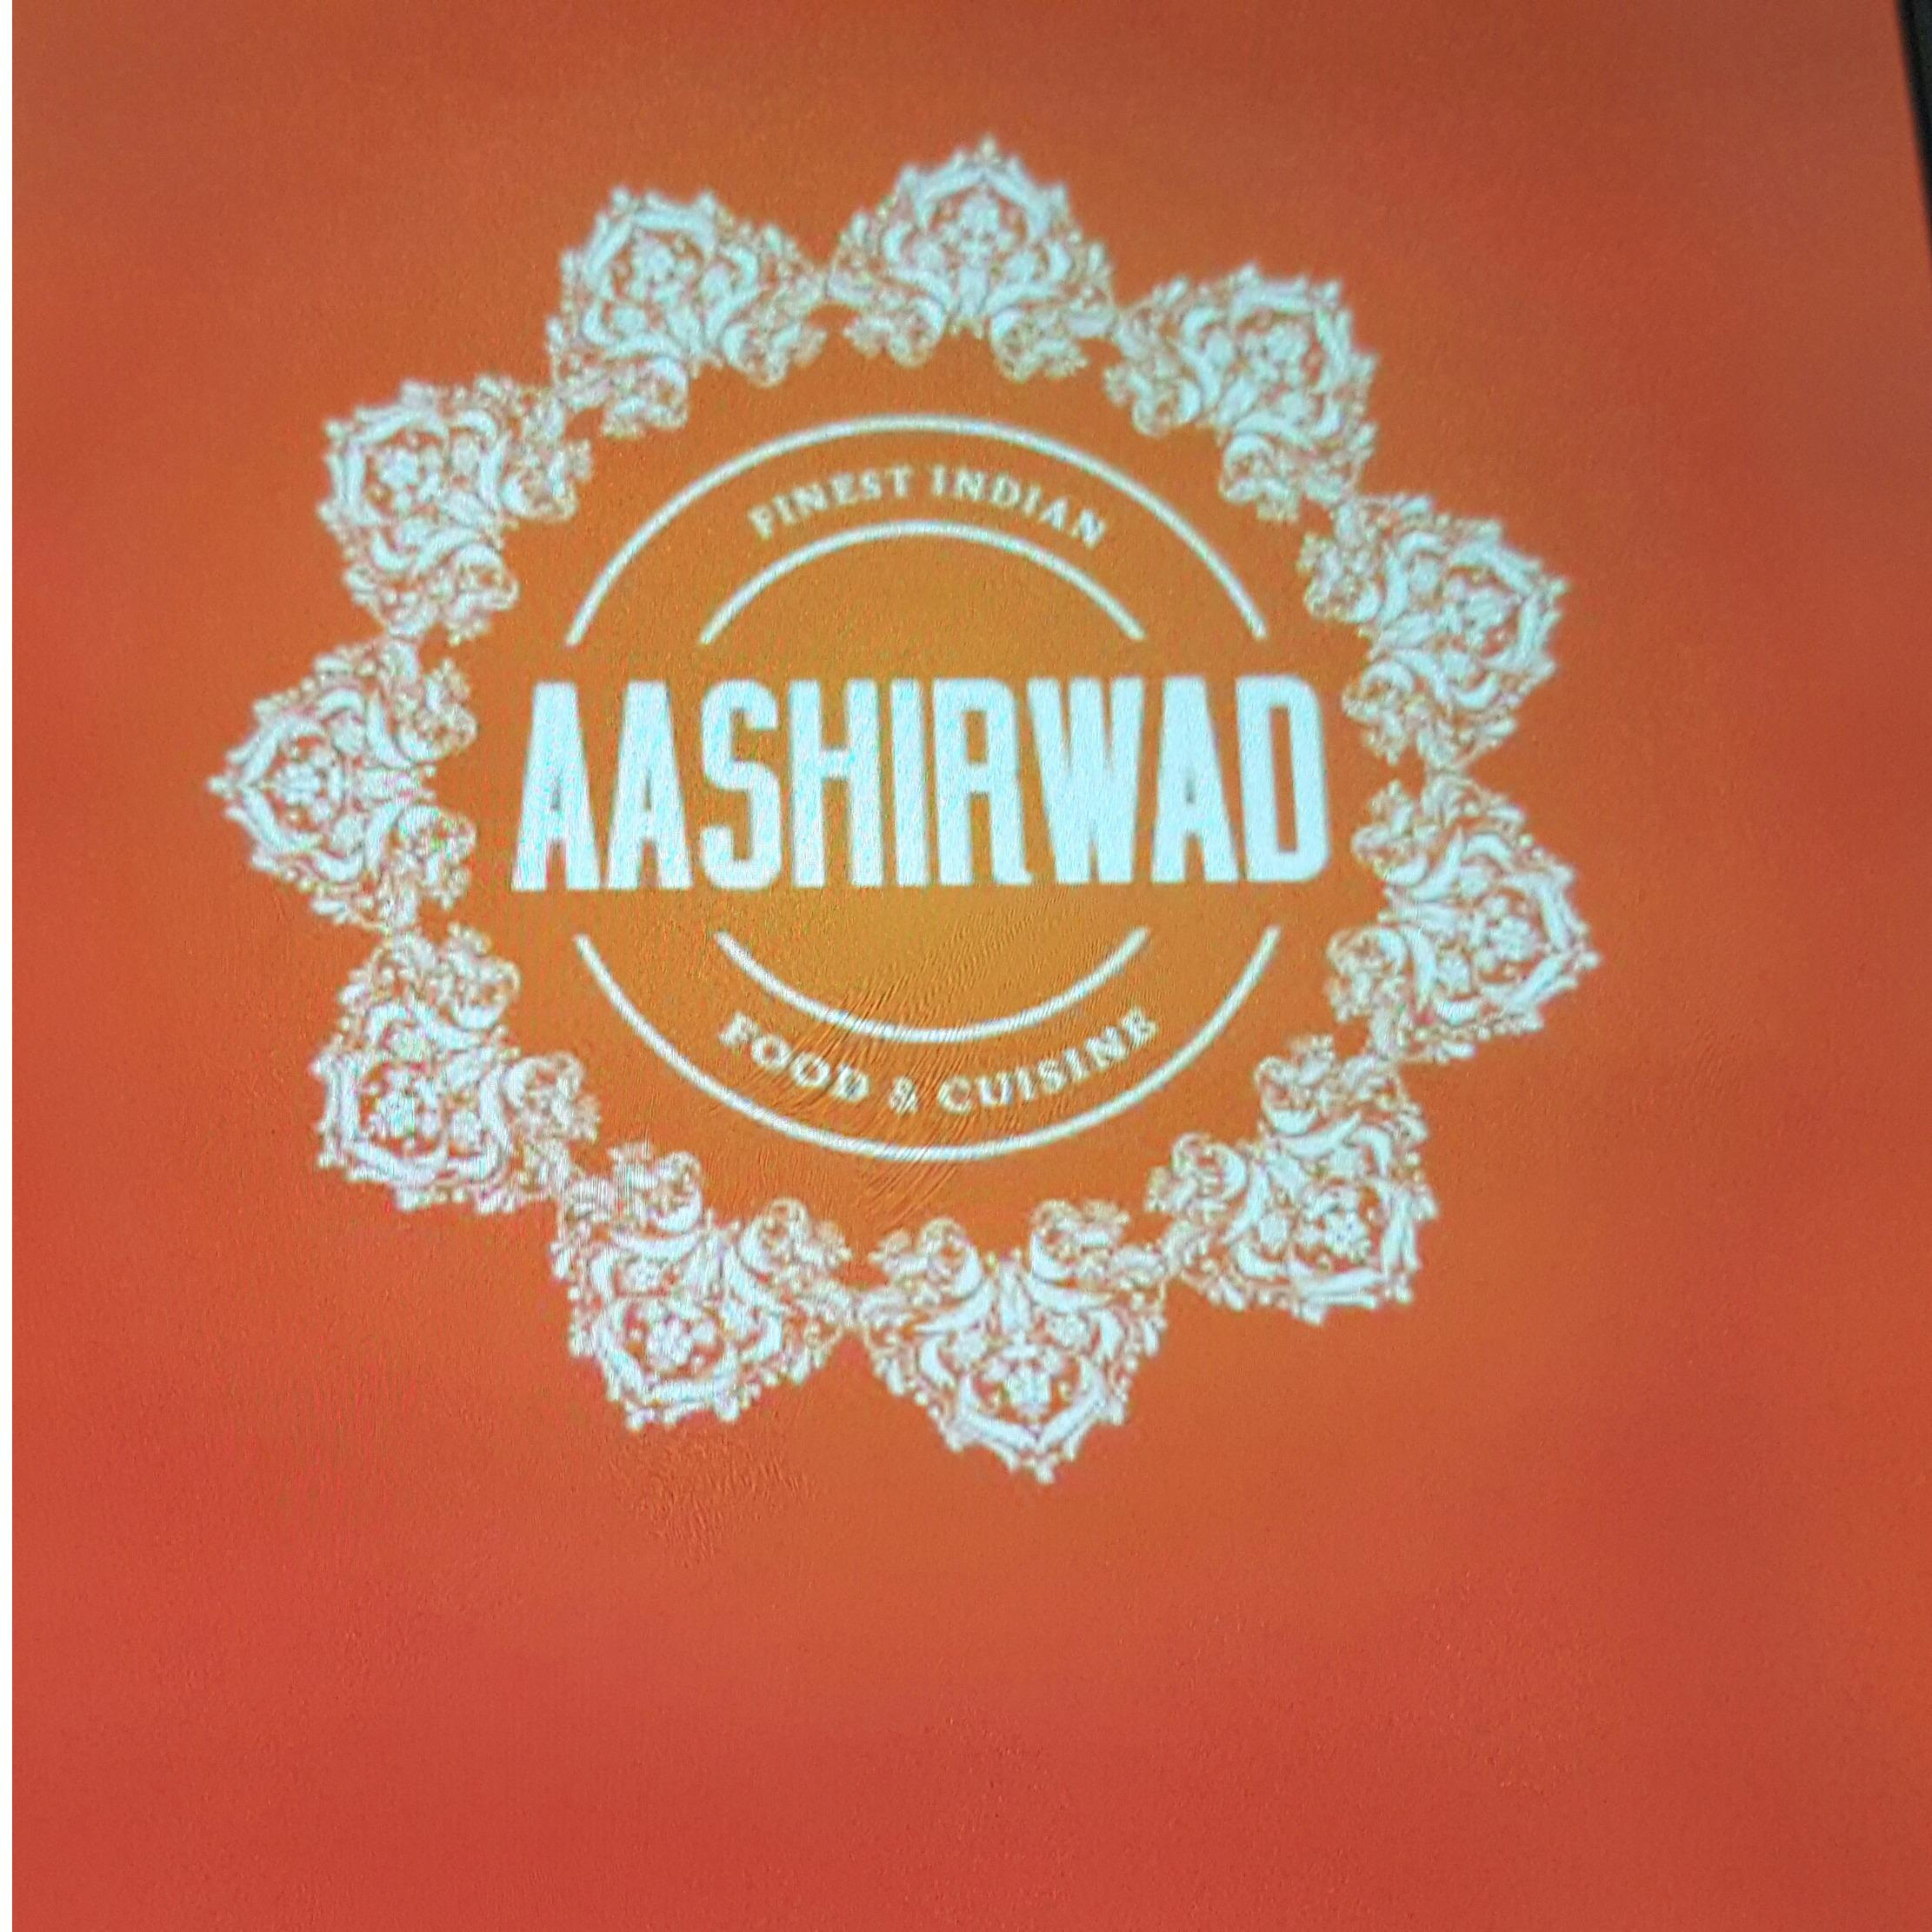 Aashirwad indian food and bar orlando florida fl for Aashirwad indian cuisine